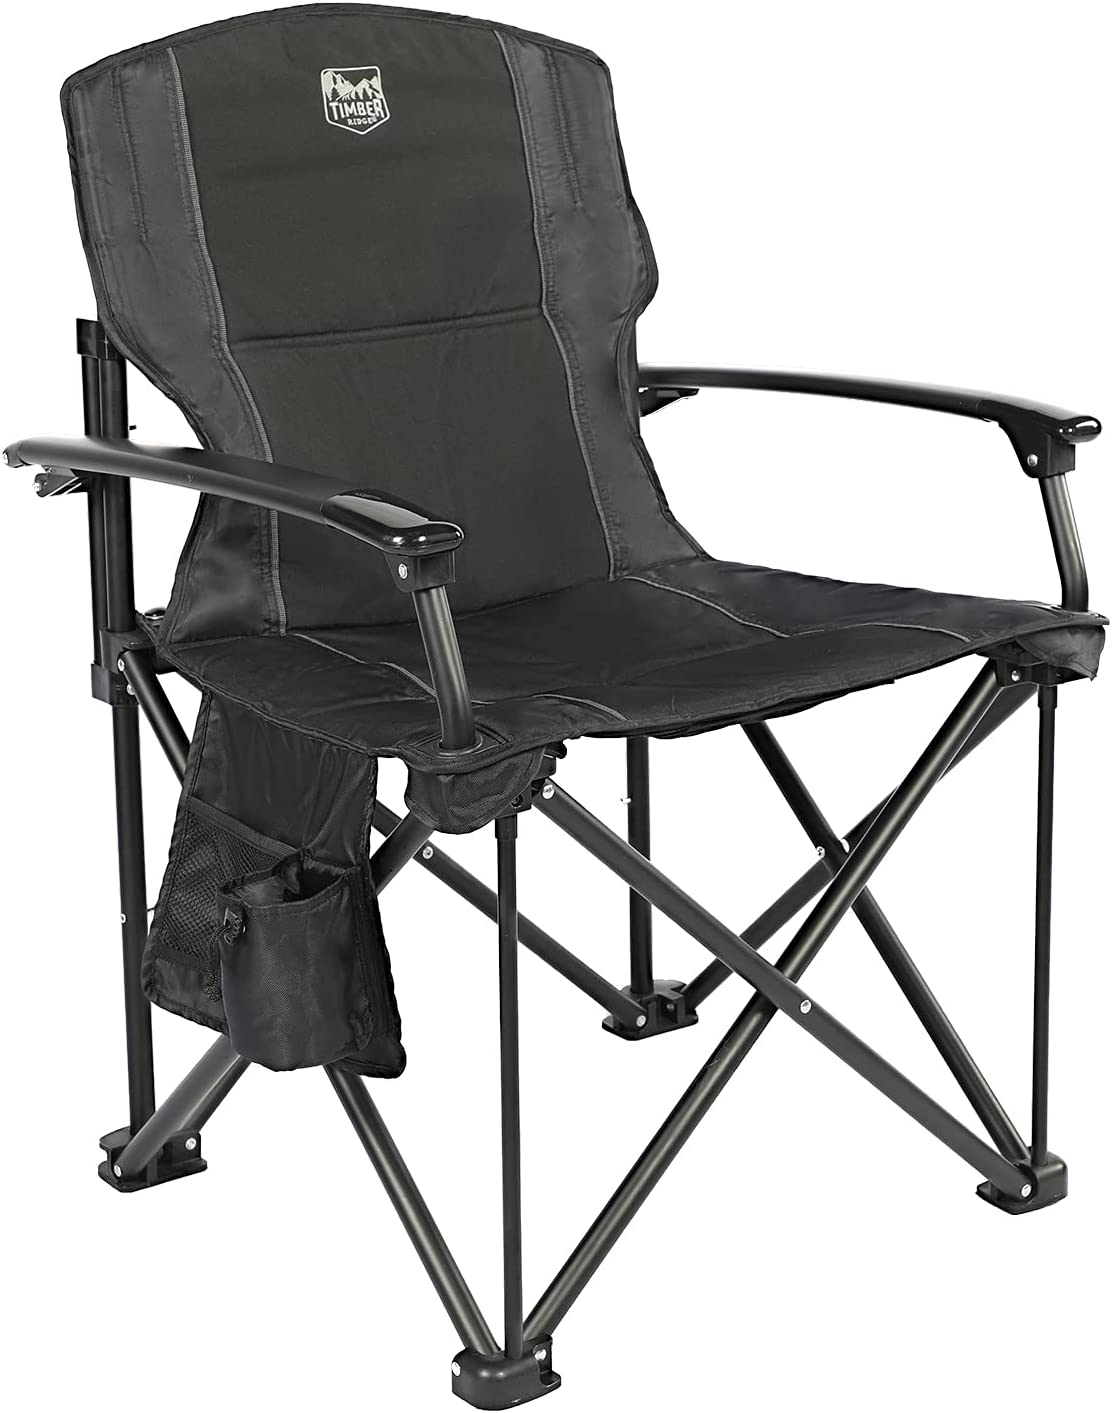 TIMBER RIDGE Lightweight Portable Outdoor Aluminum Folding Camping Quad Chair with Hard Armrest-Support Capacity 300 lbs.